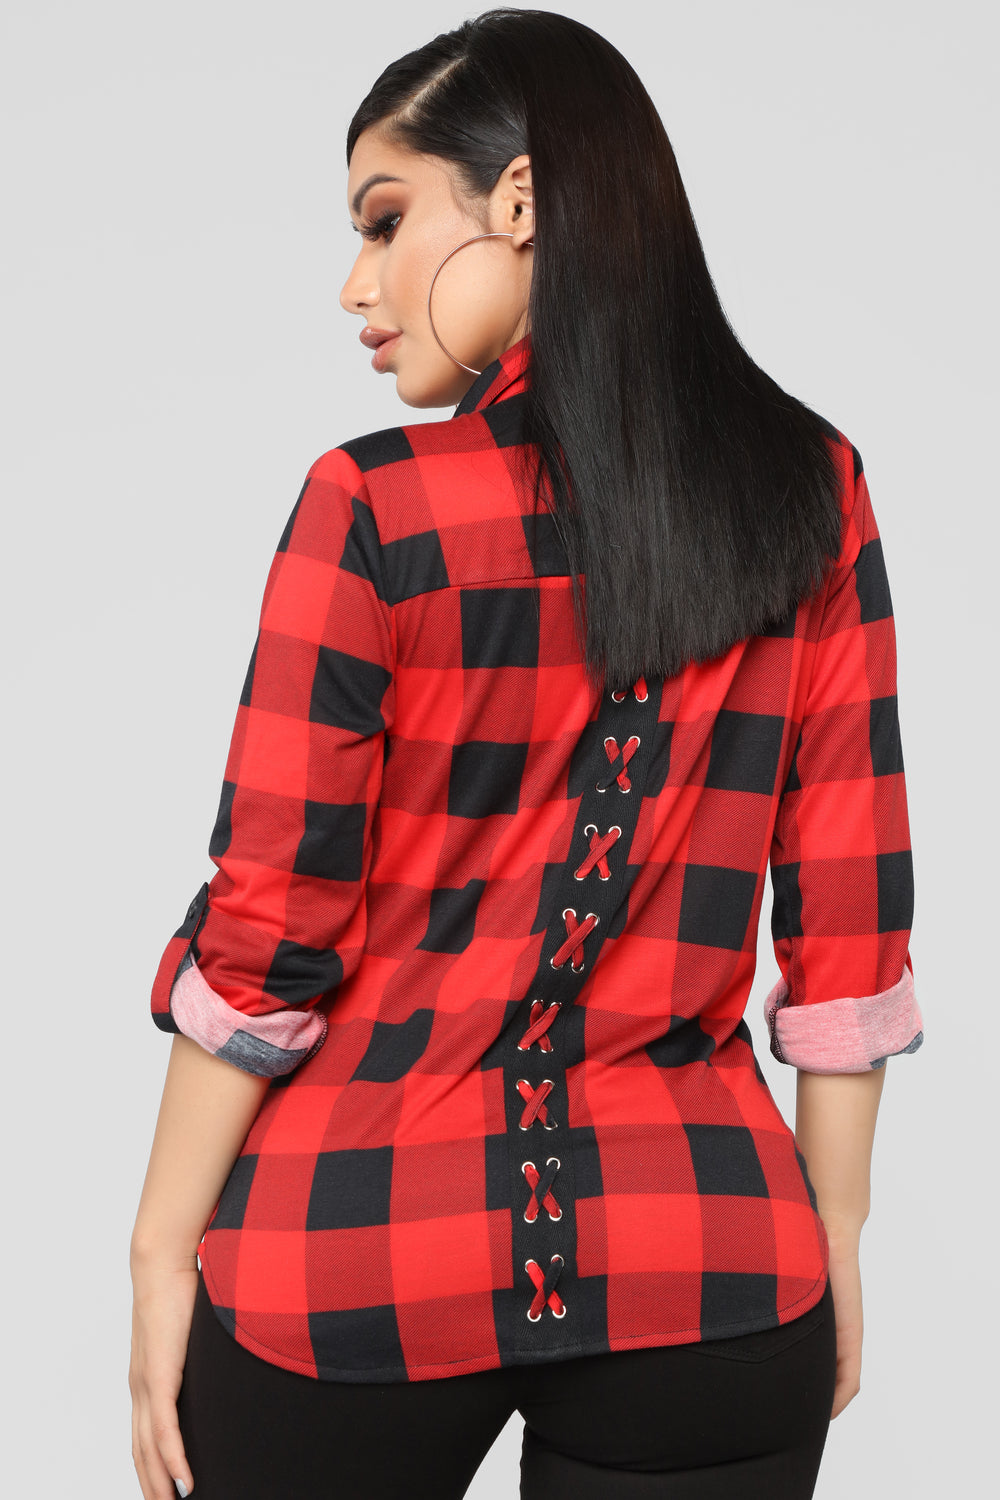 Soul Mate Black Plaid Top - Black/Red